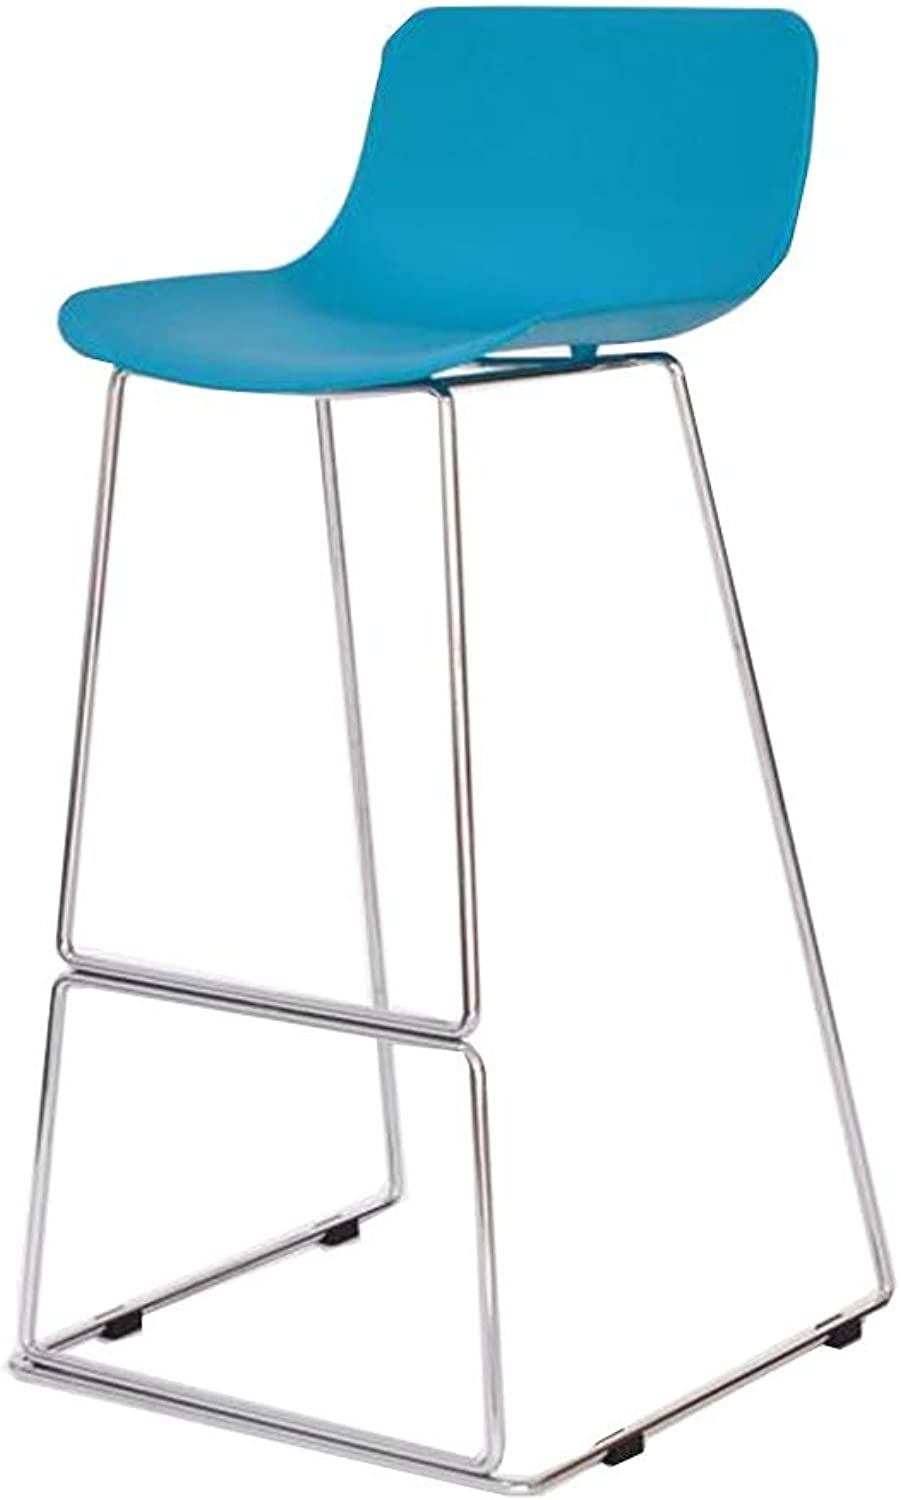 XUERUI Barstools Bar Stools, Bar Chair, High Chair, Reception Chair, Iron Art, Modern Simplicity Household Bar Counter - Multi-color Optional Strong Stability (color   bluee, Size   H 65CM)